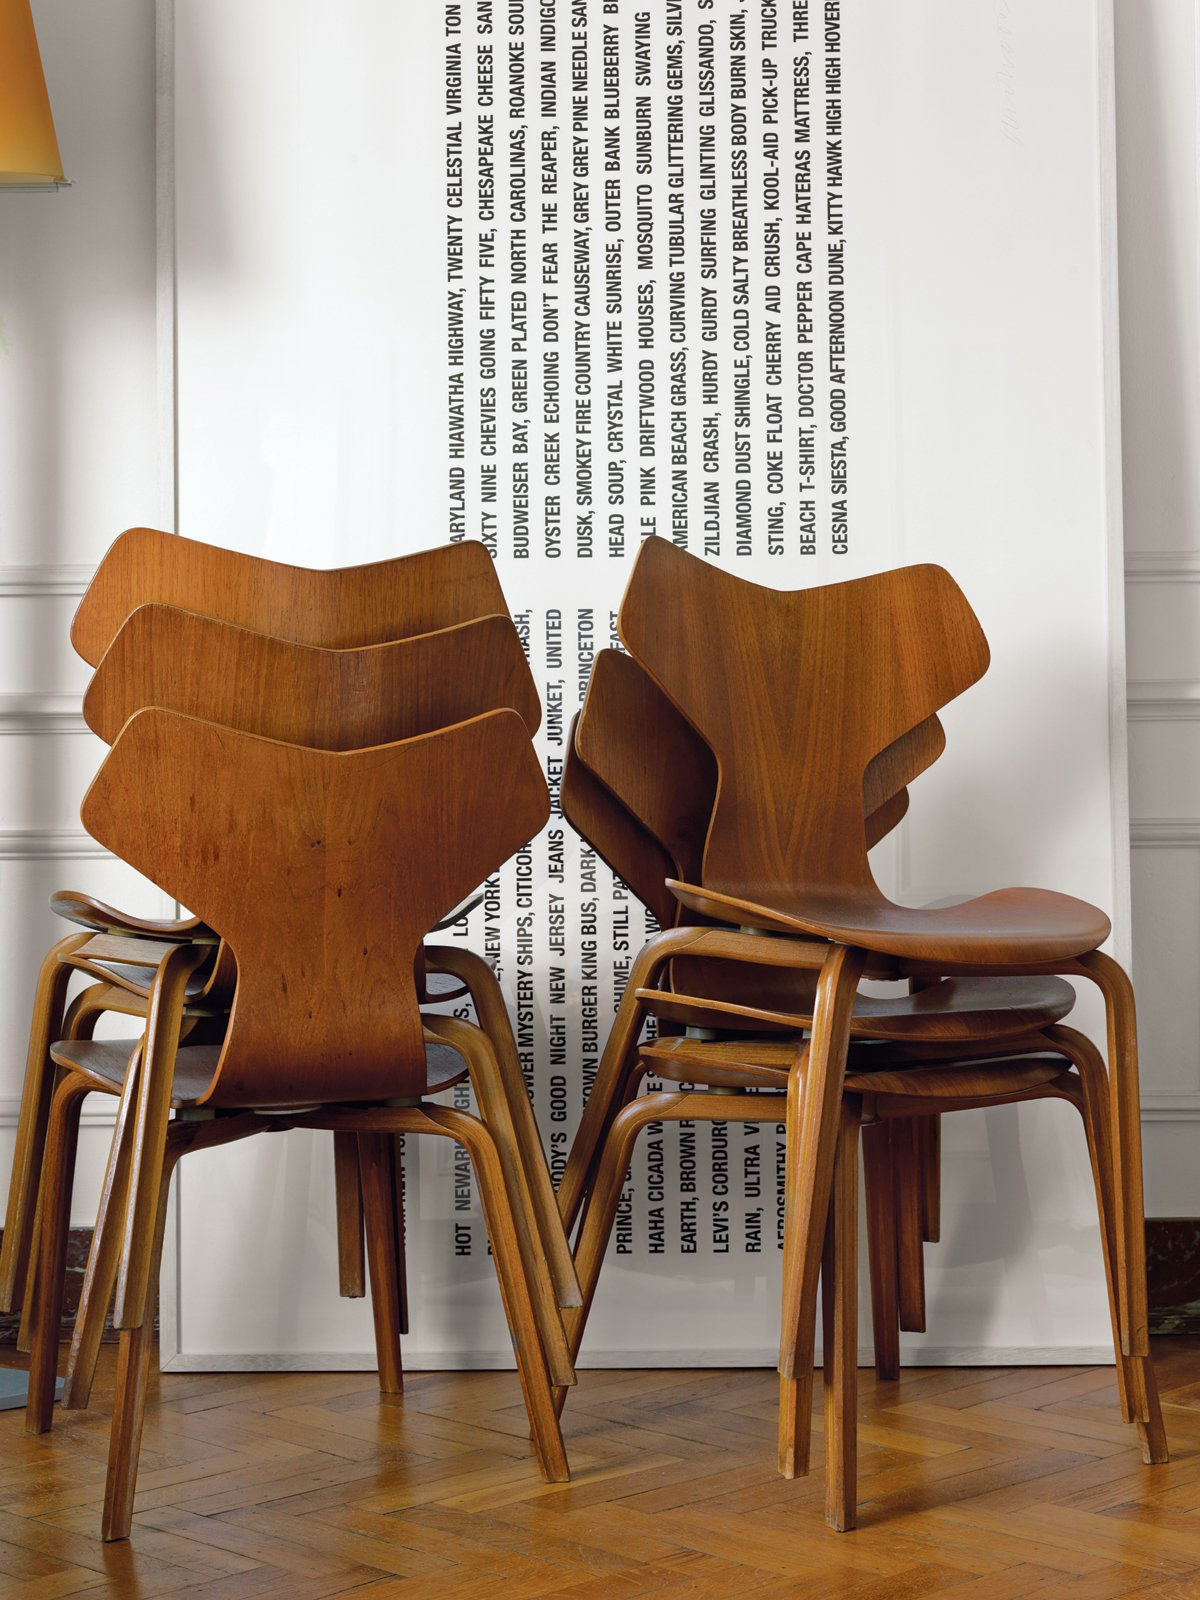 #seatingdesign #chair #stacked #GrandPrix #ArneJacobsen #minimal #midcenturymodern #modern #wood #timeless   100+ Best Modern Seating Designs by Dwell